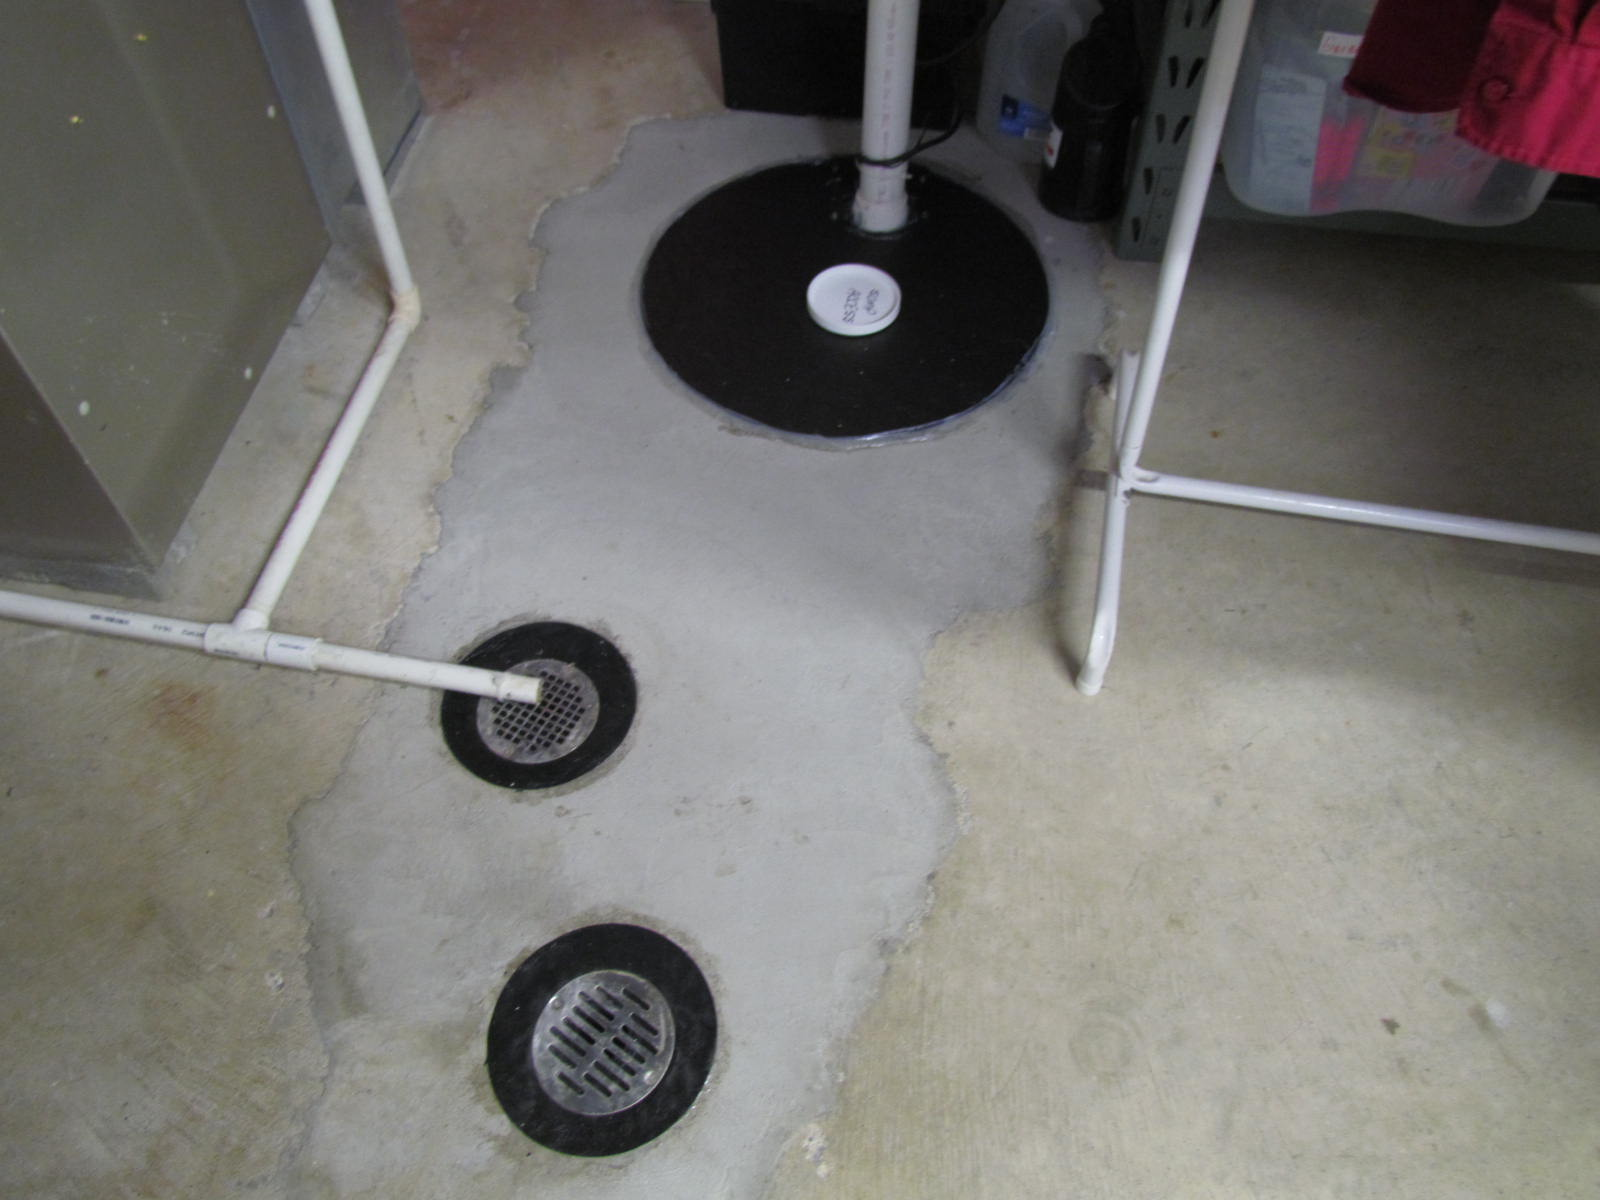 Radon specialties co inc covers sumps crawlspace and others floor drain covers for active radon system dailygadgetfo Image collections